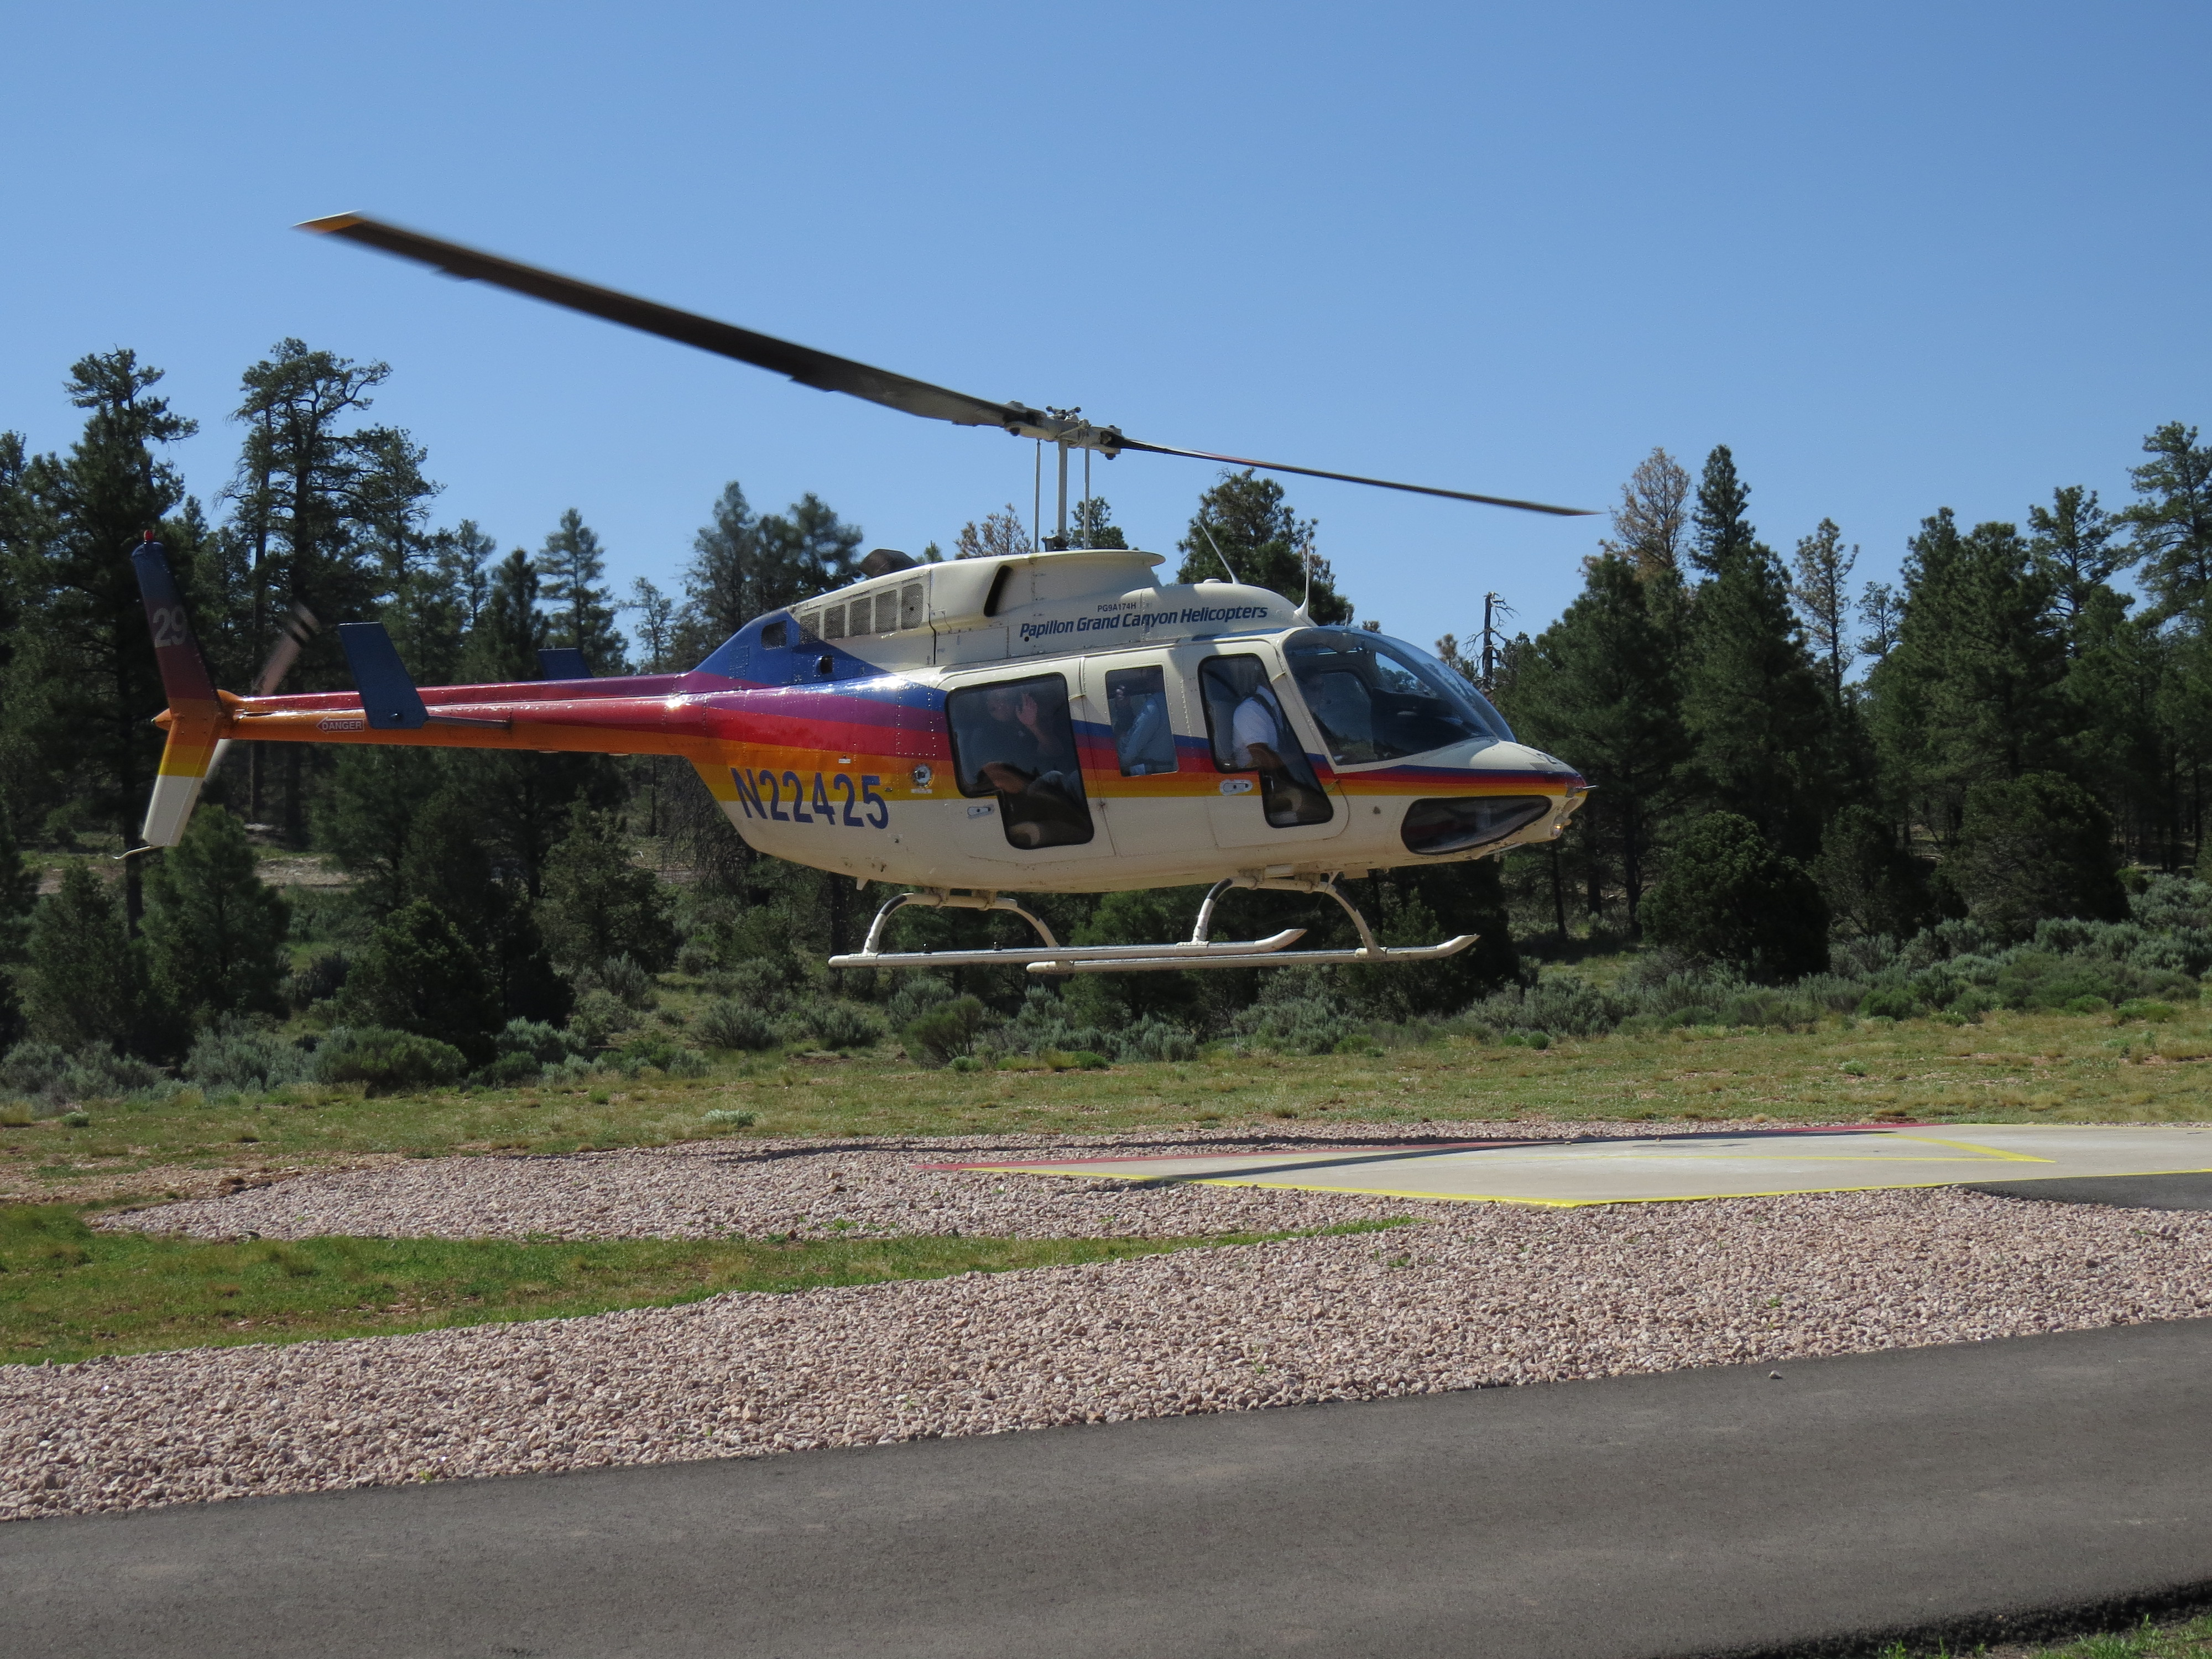 Papillon grand canyon helicopters coupons